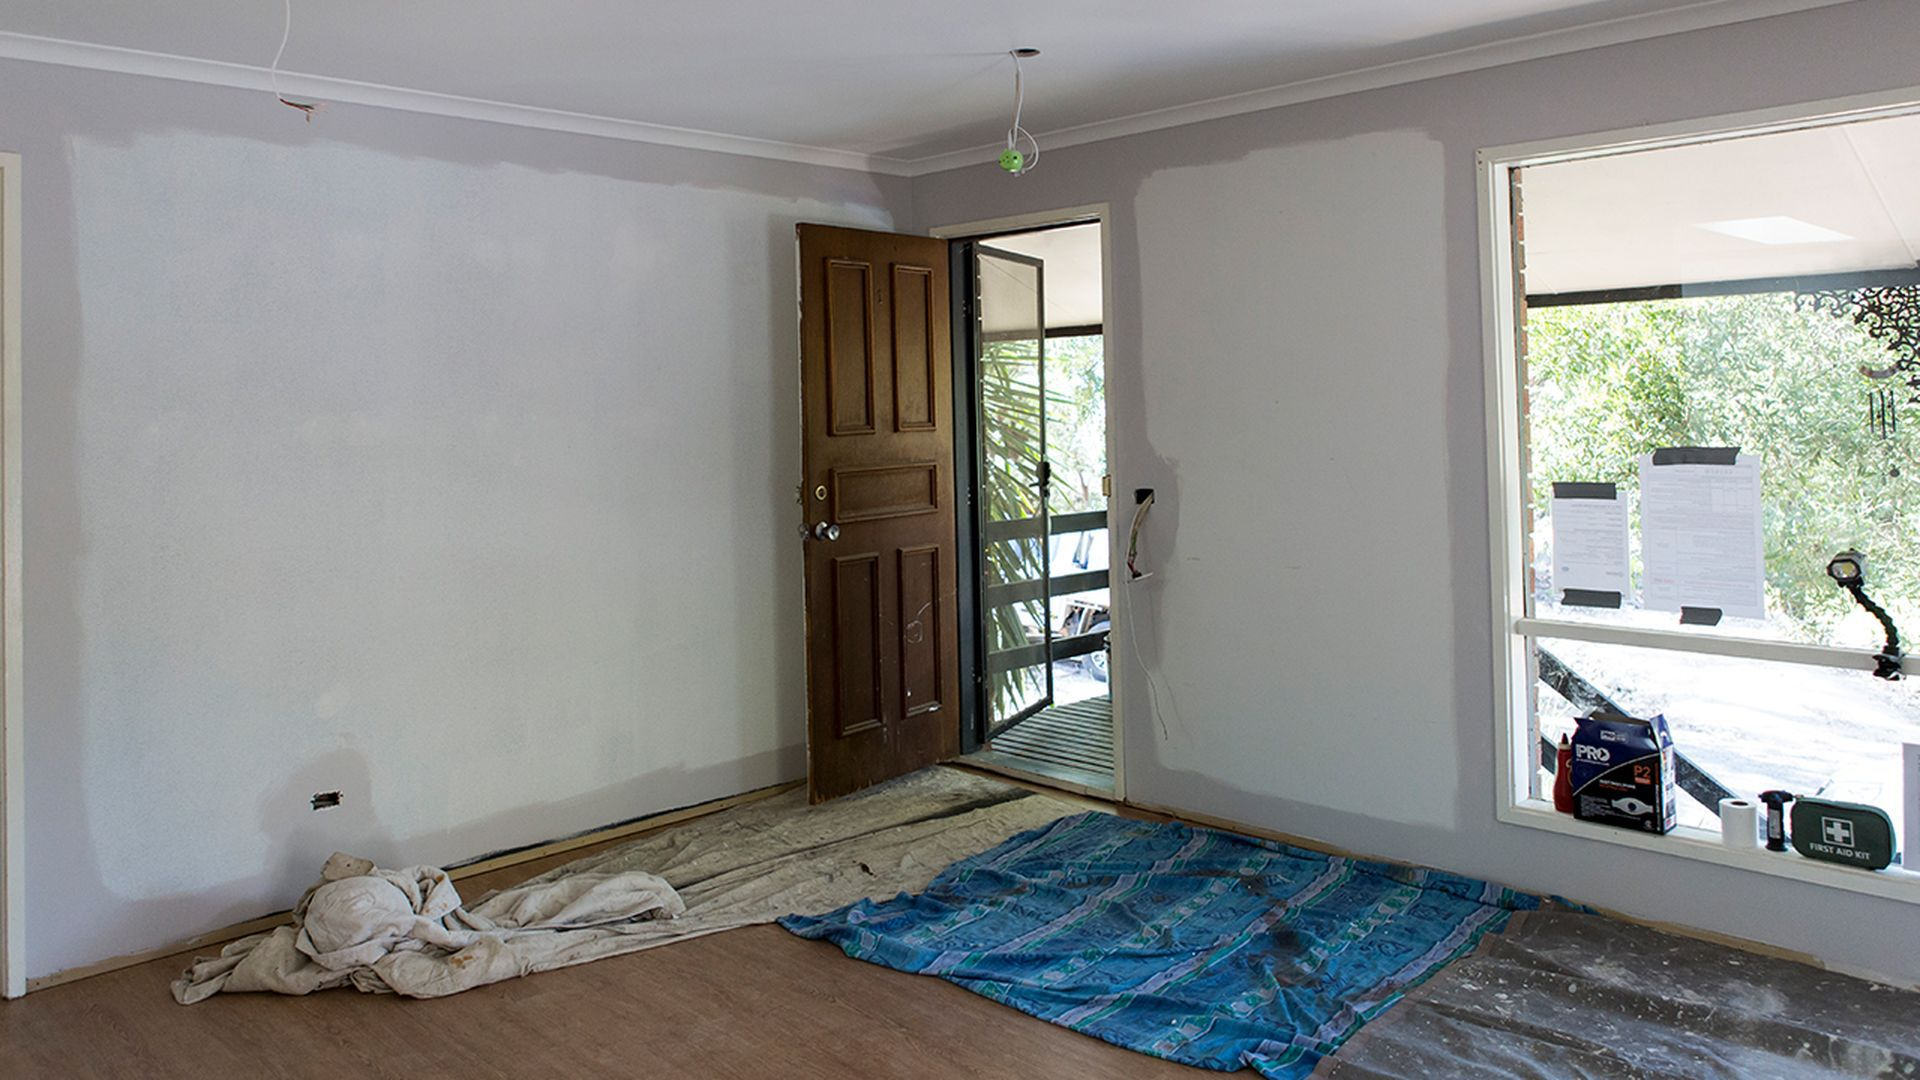 Living and entry - During